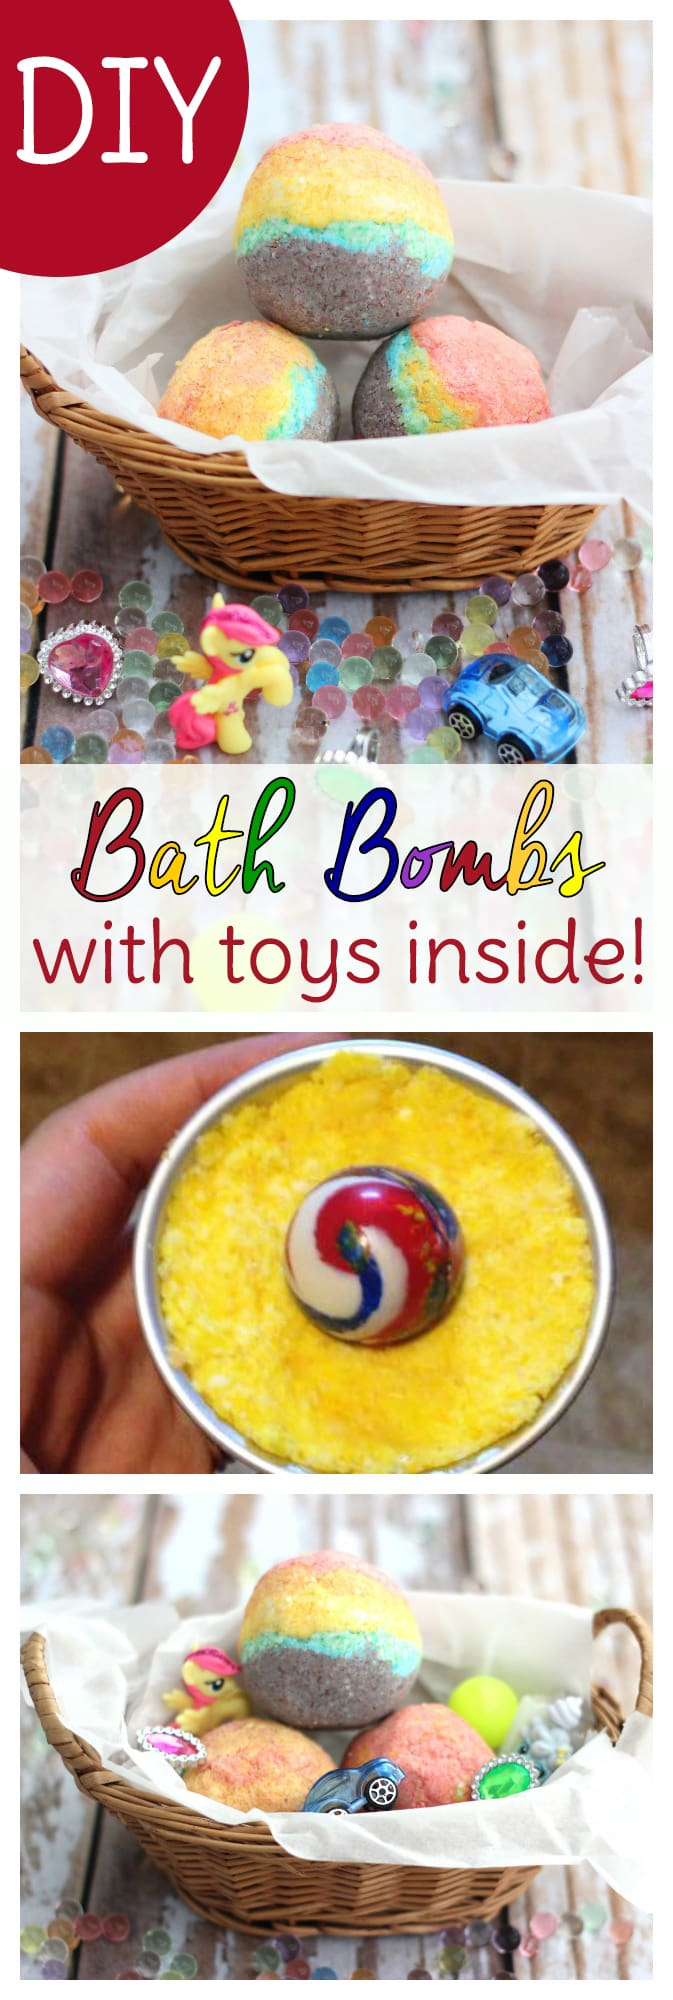 Surprise Bath Bombs with Toys Inside